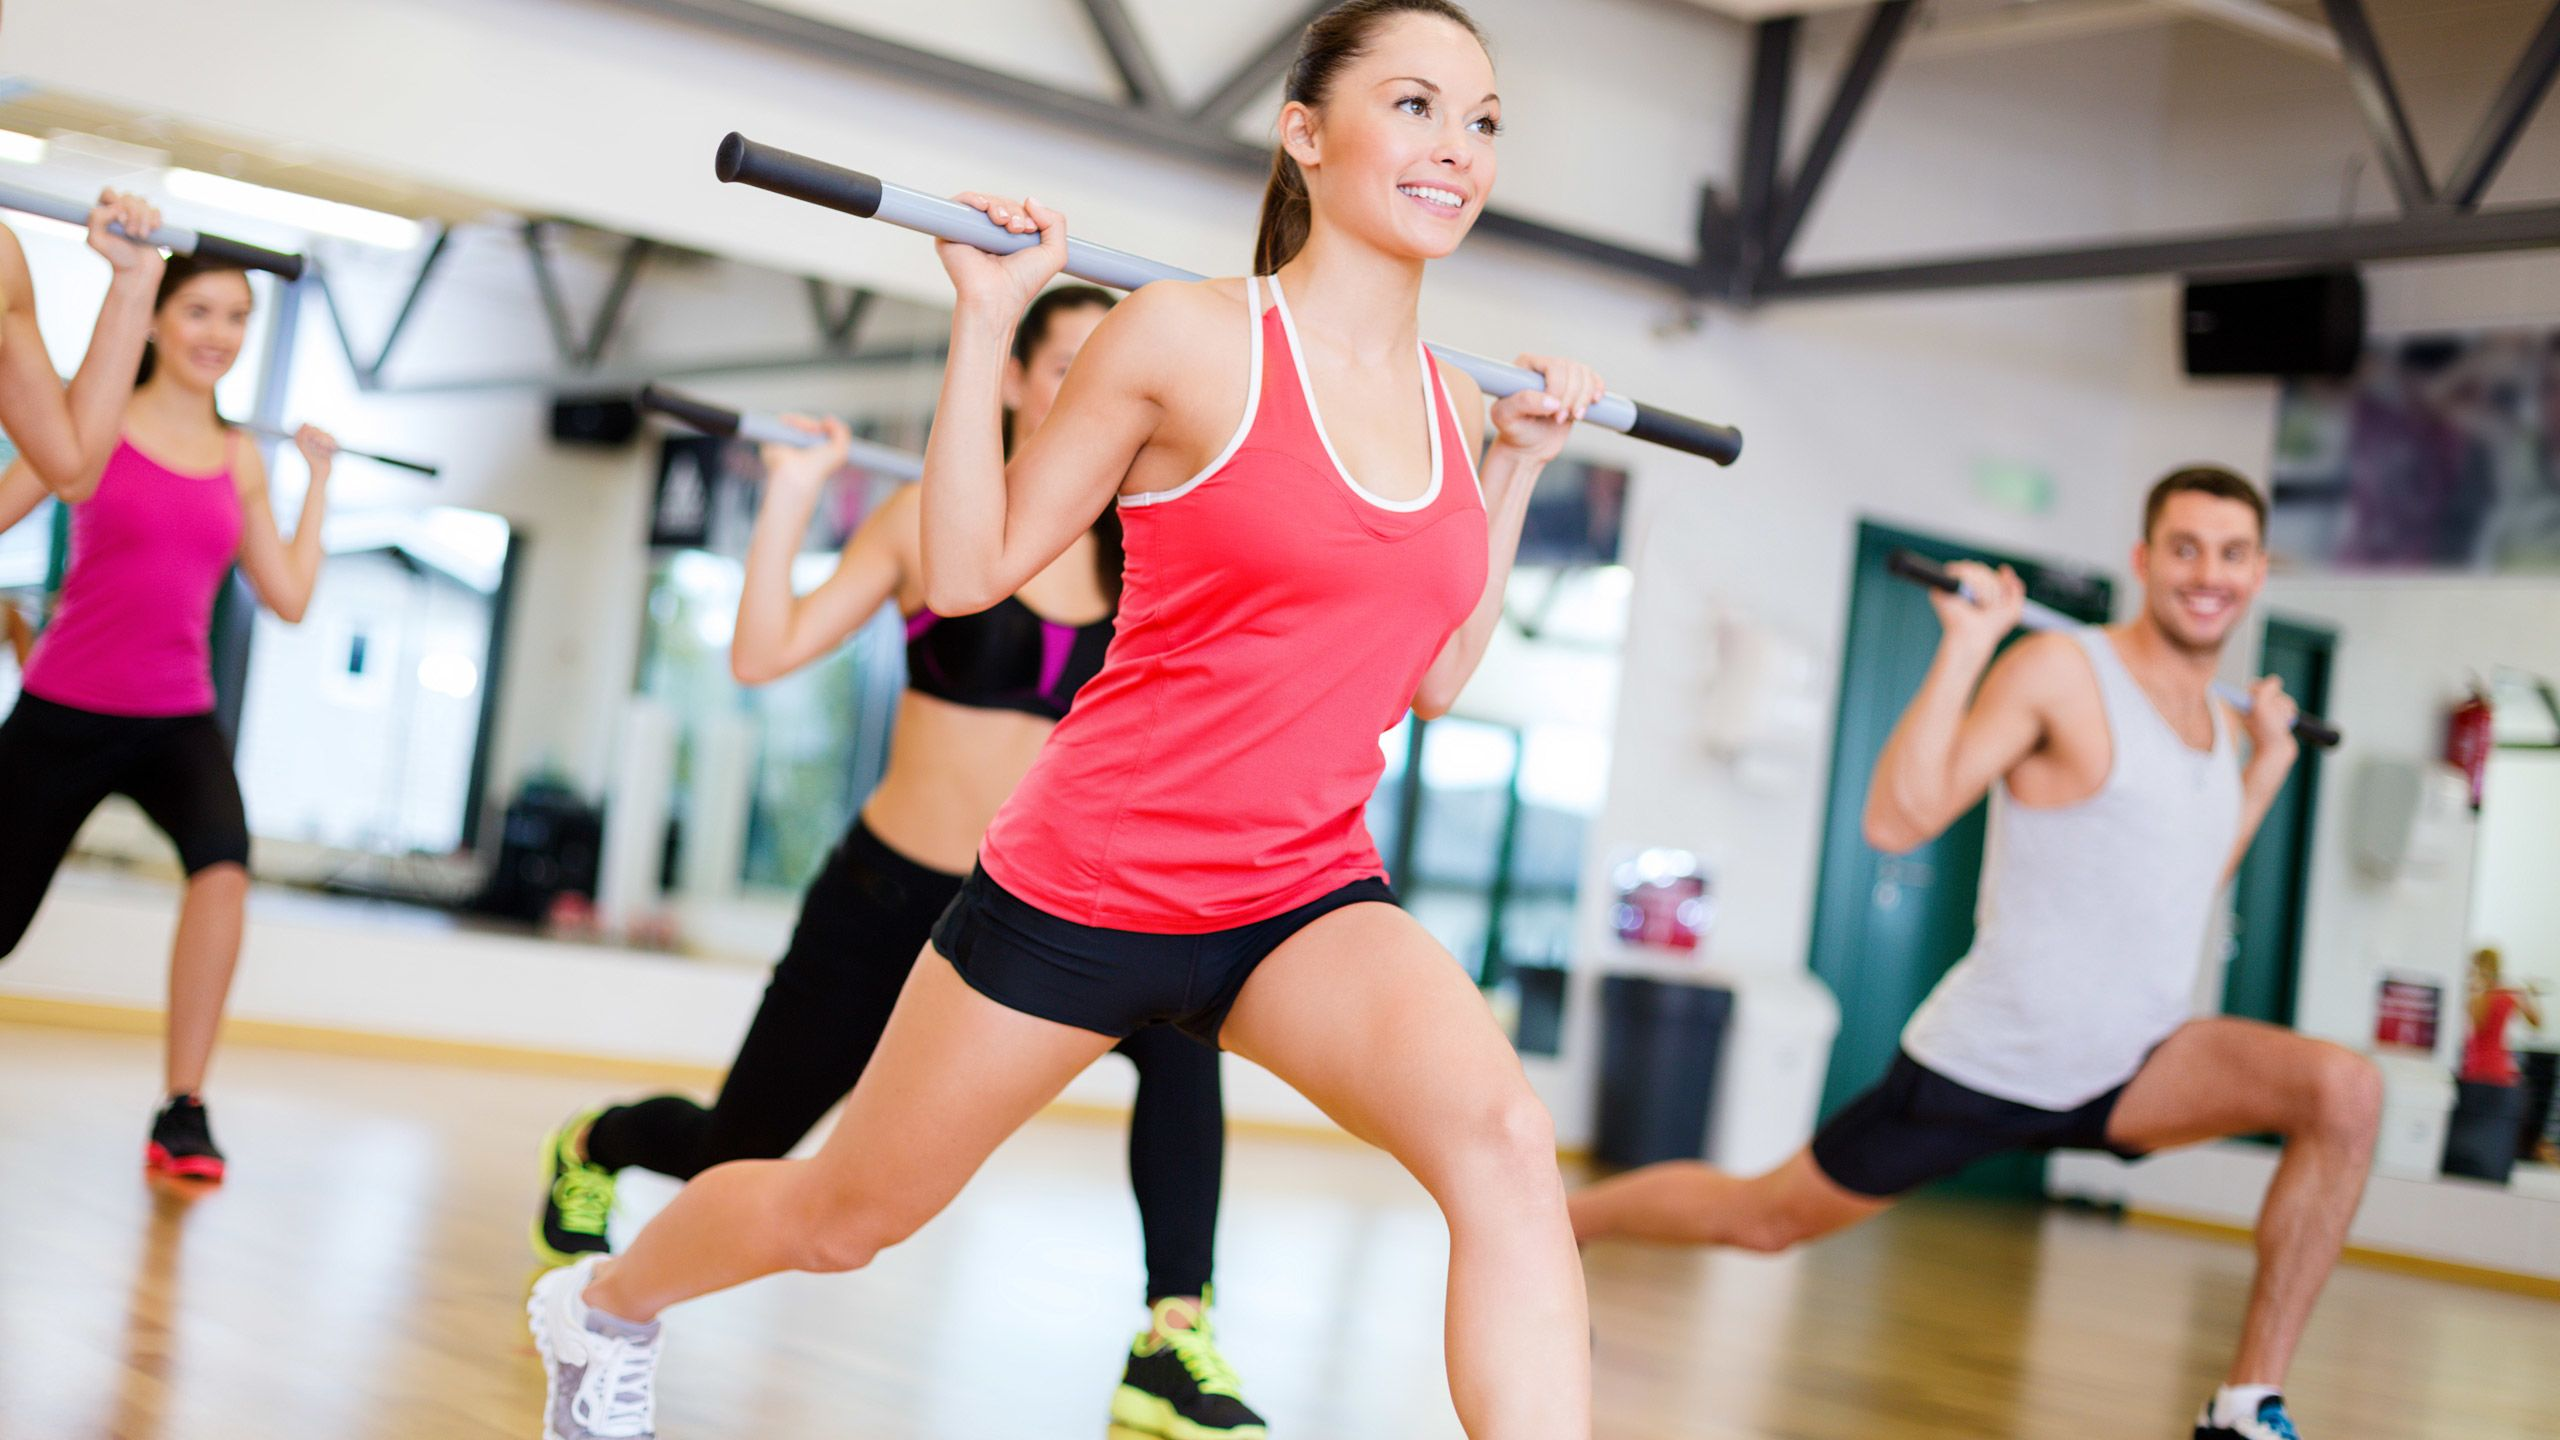 5 Embarrassing Gym Moments -- And How to Avoid Them